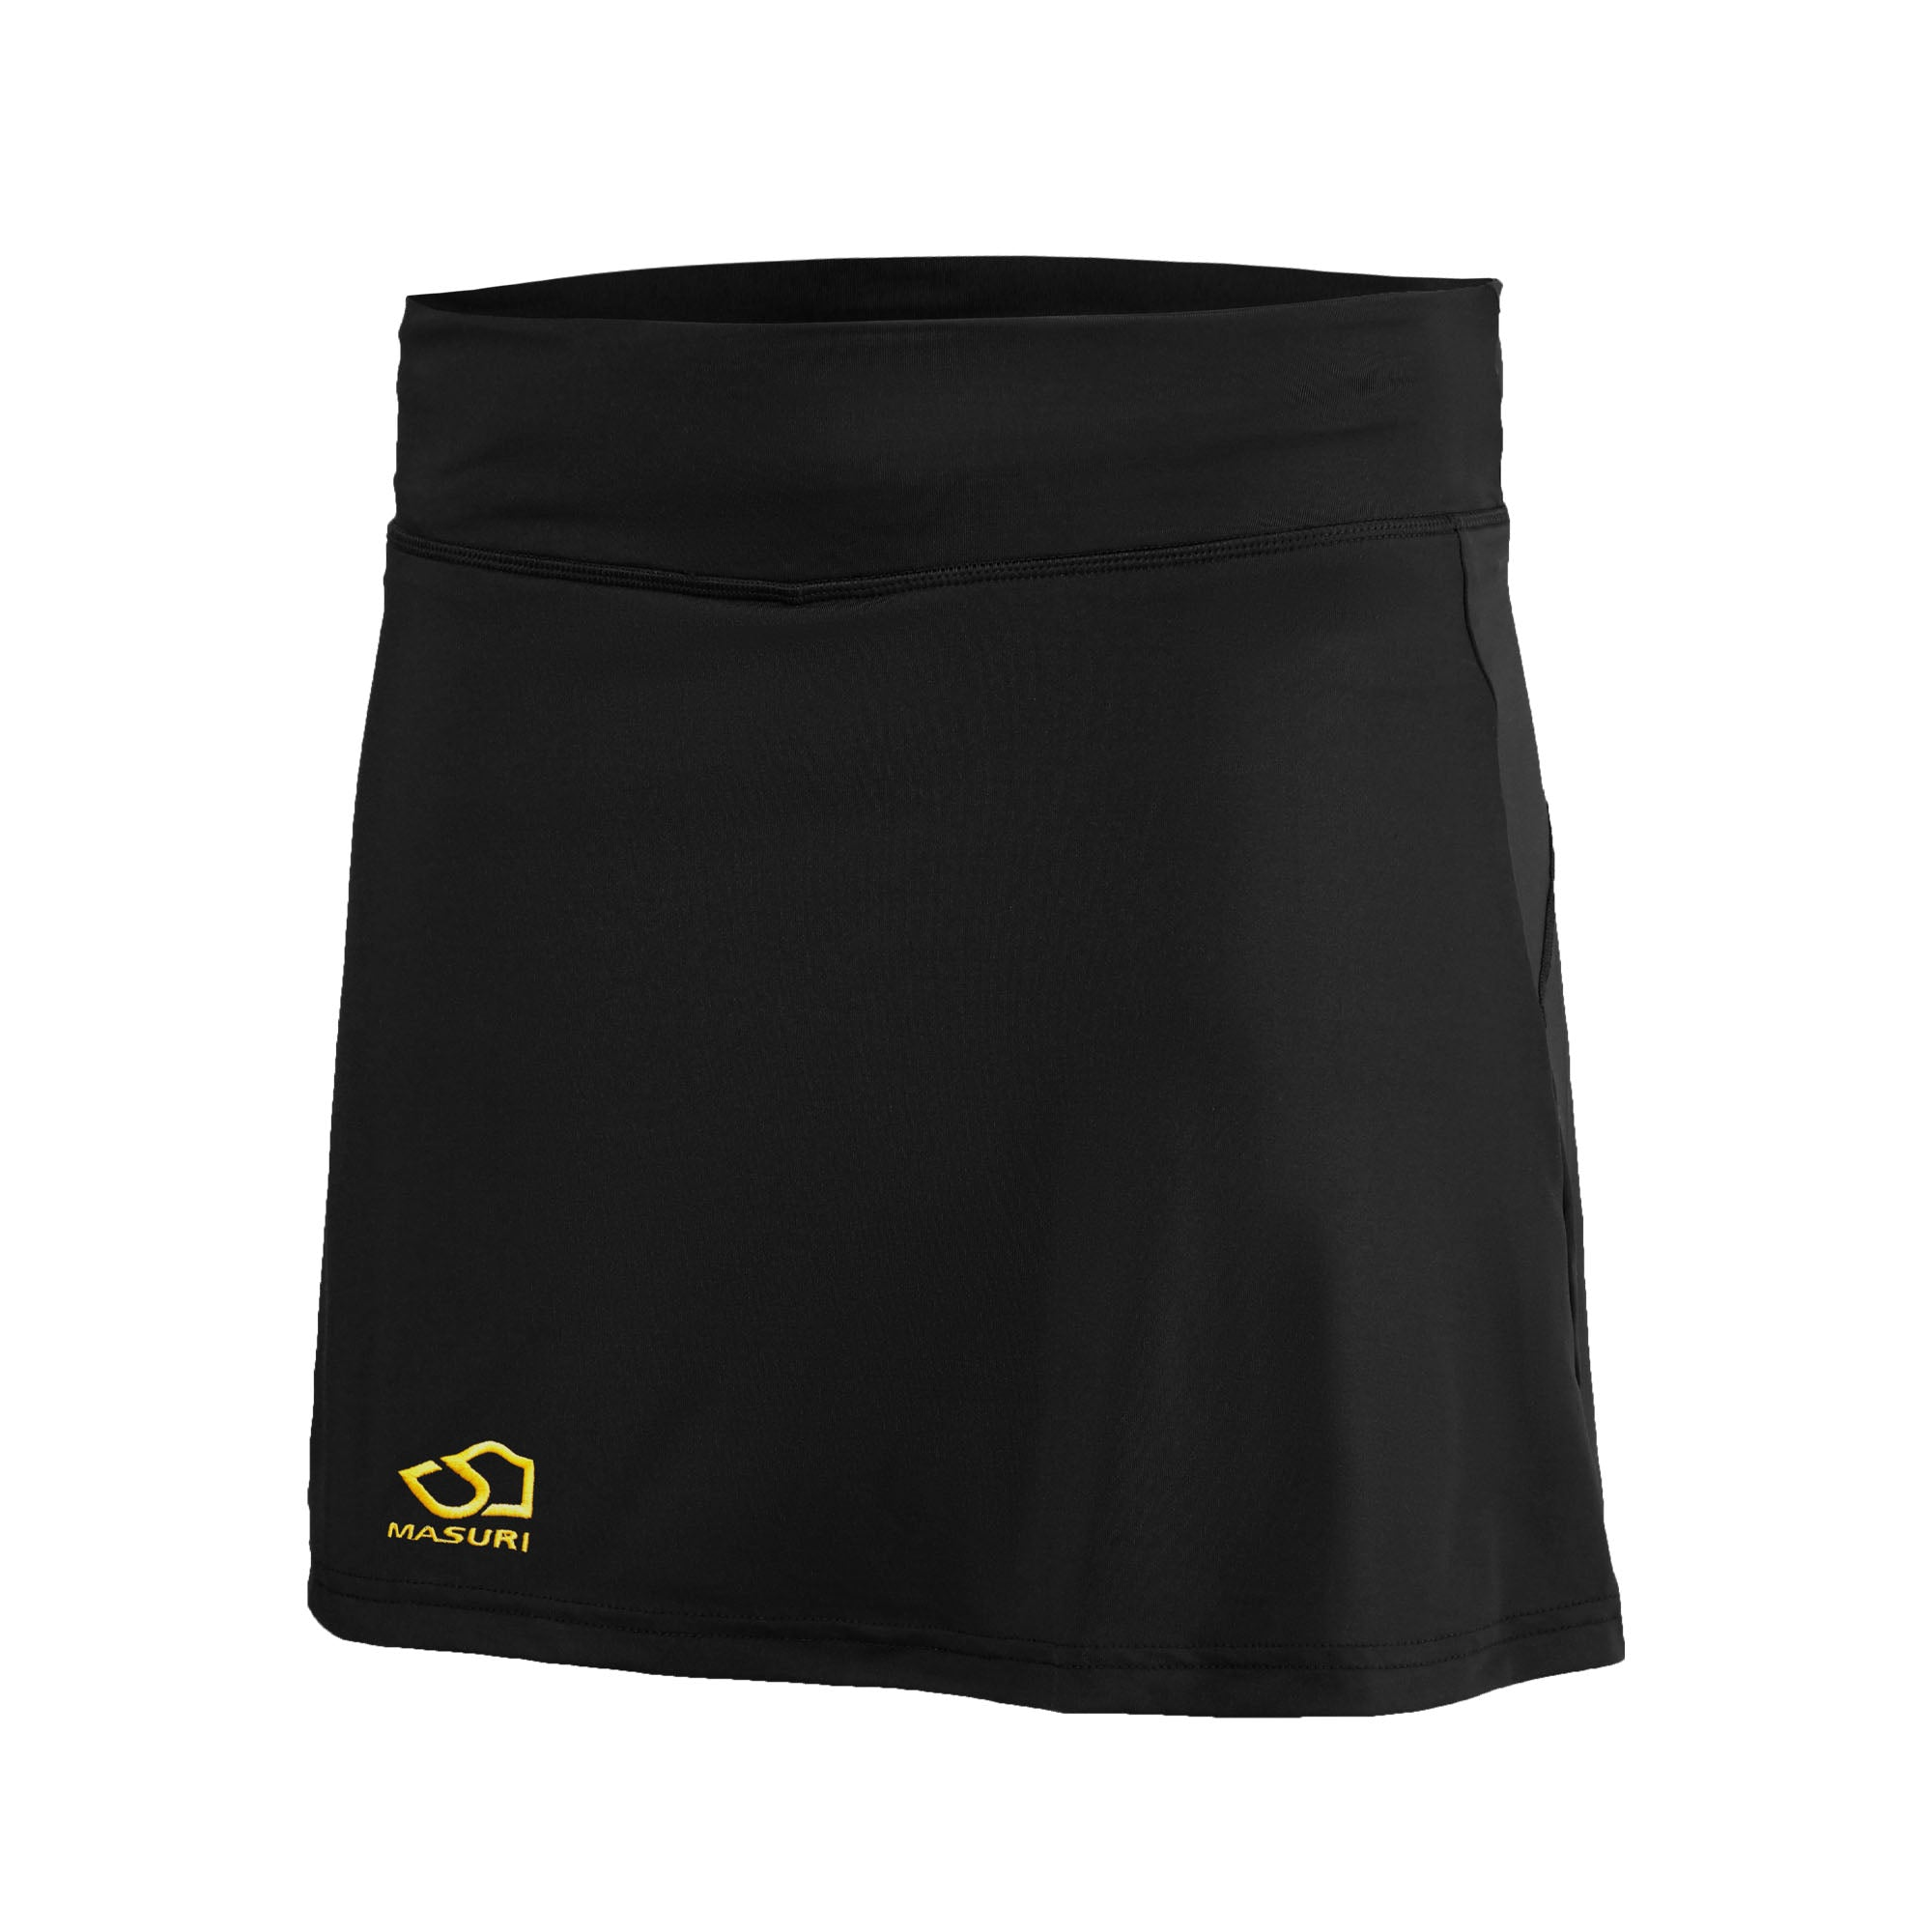 LADIES SKORT - TRADE ACCOUNTS